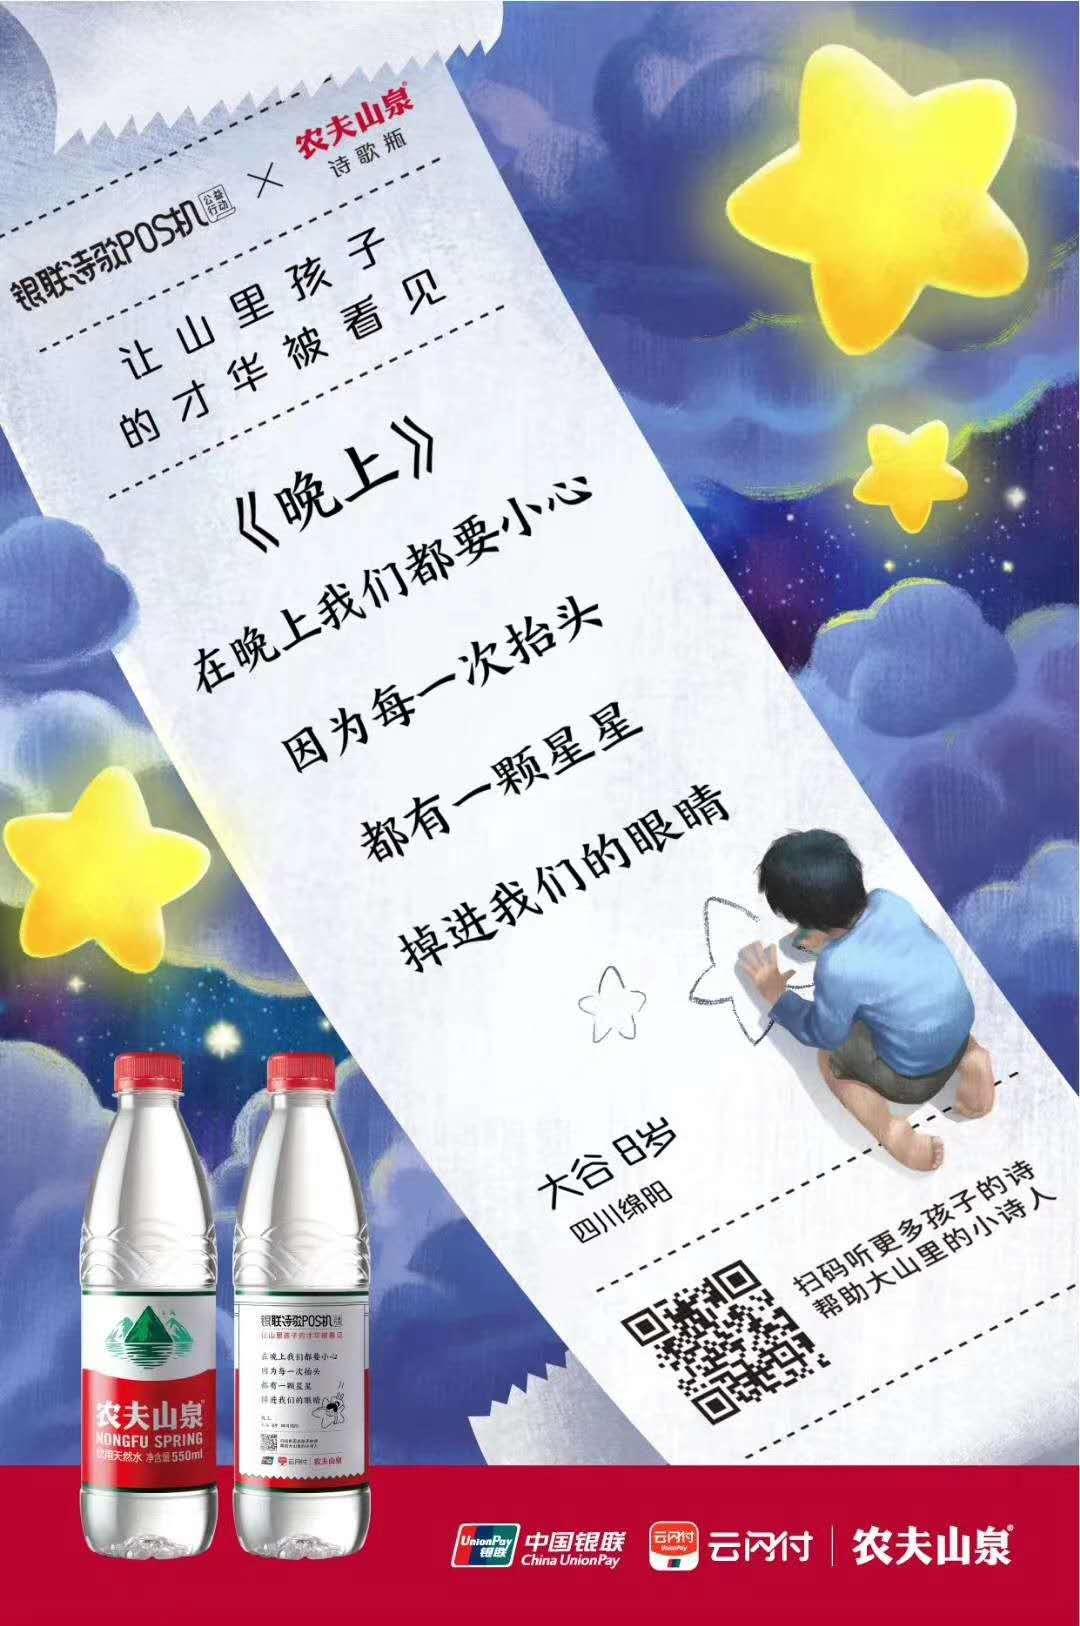 Let the talents of children in the mountains be seen: Nongfu Spring and China Un